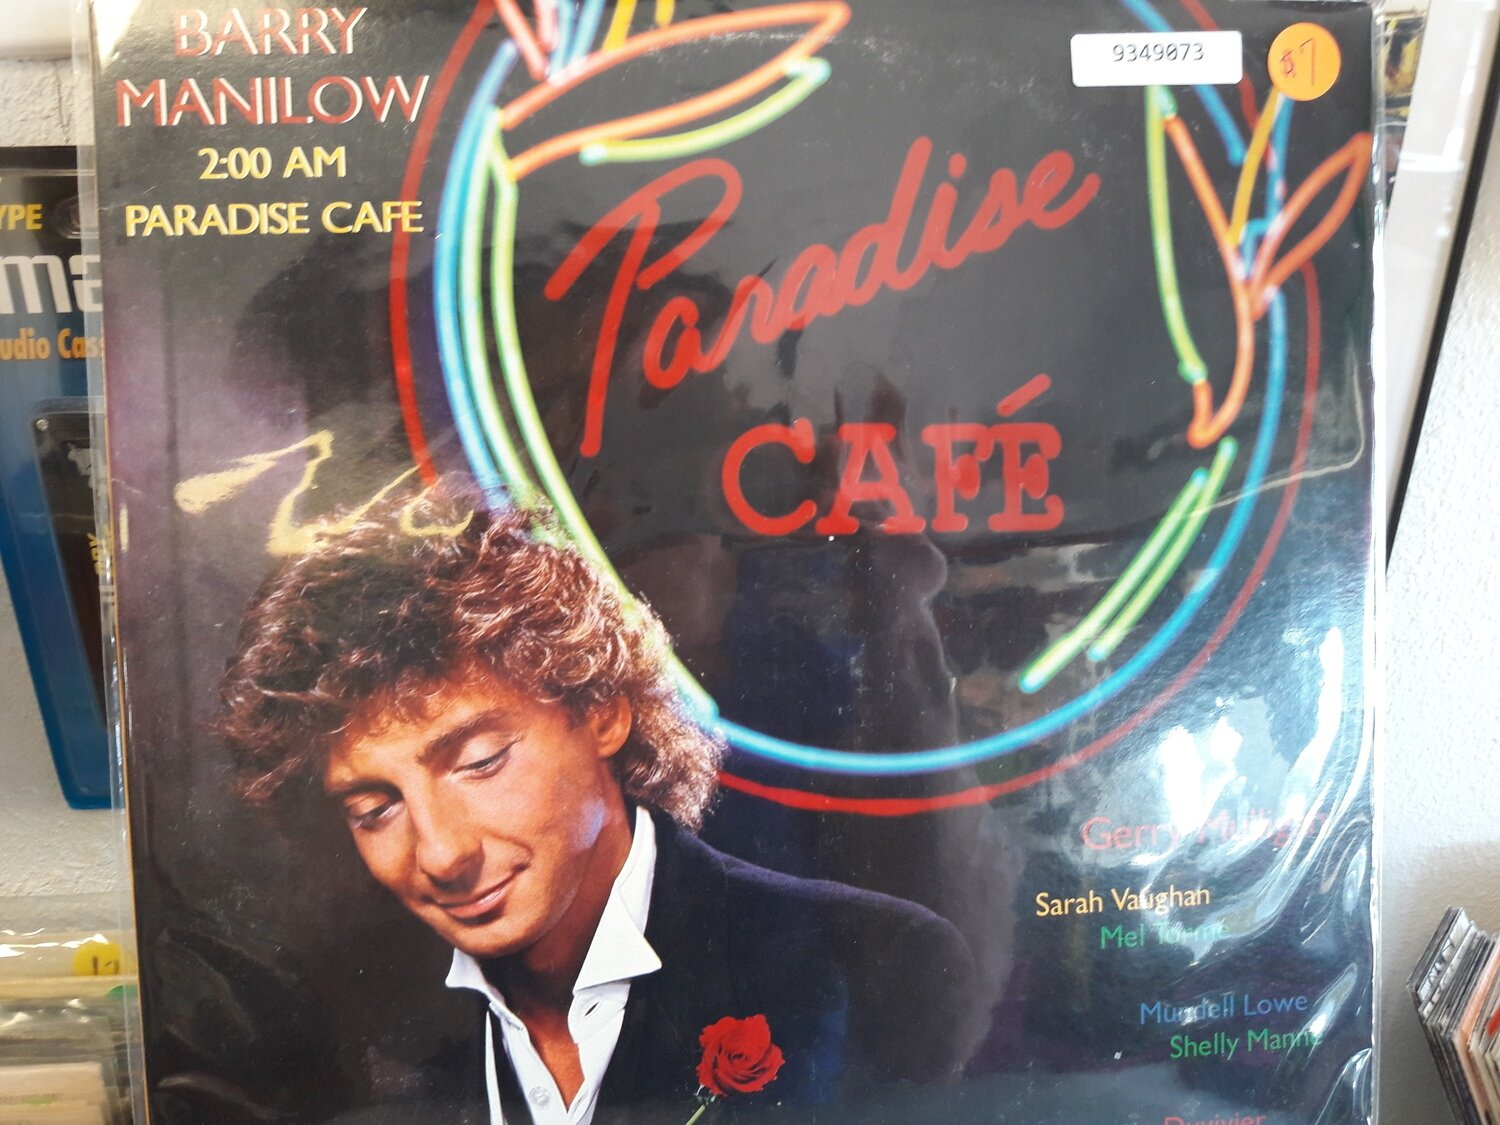 Manilow, Barry 2 a.m. Paradise Cafe